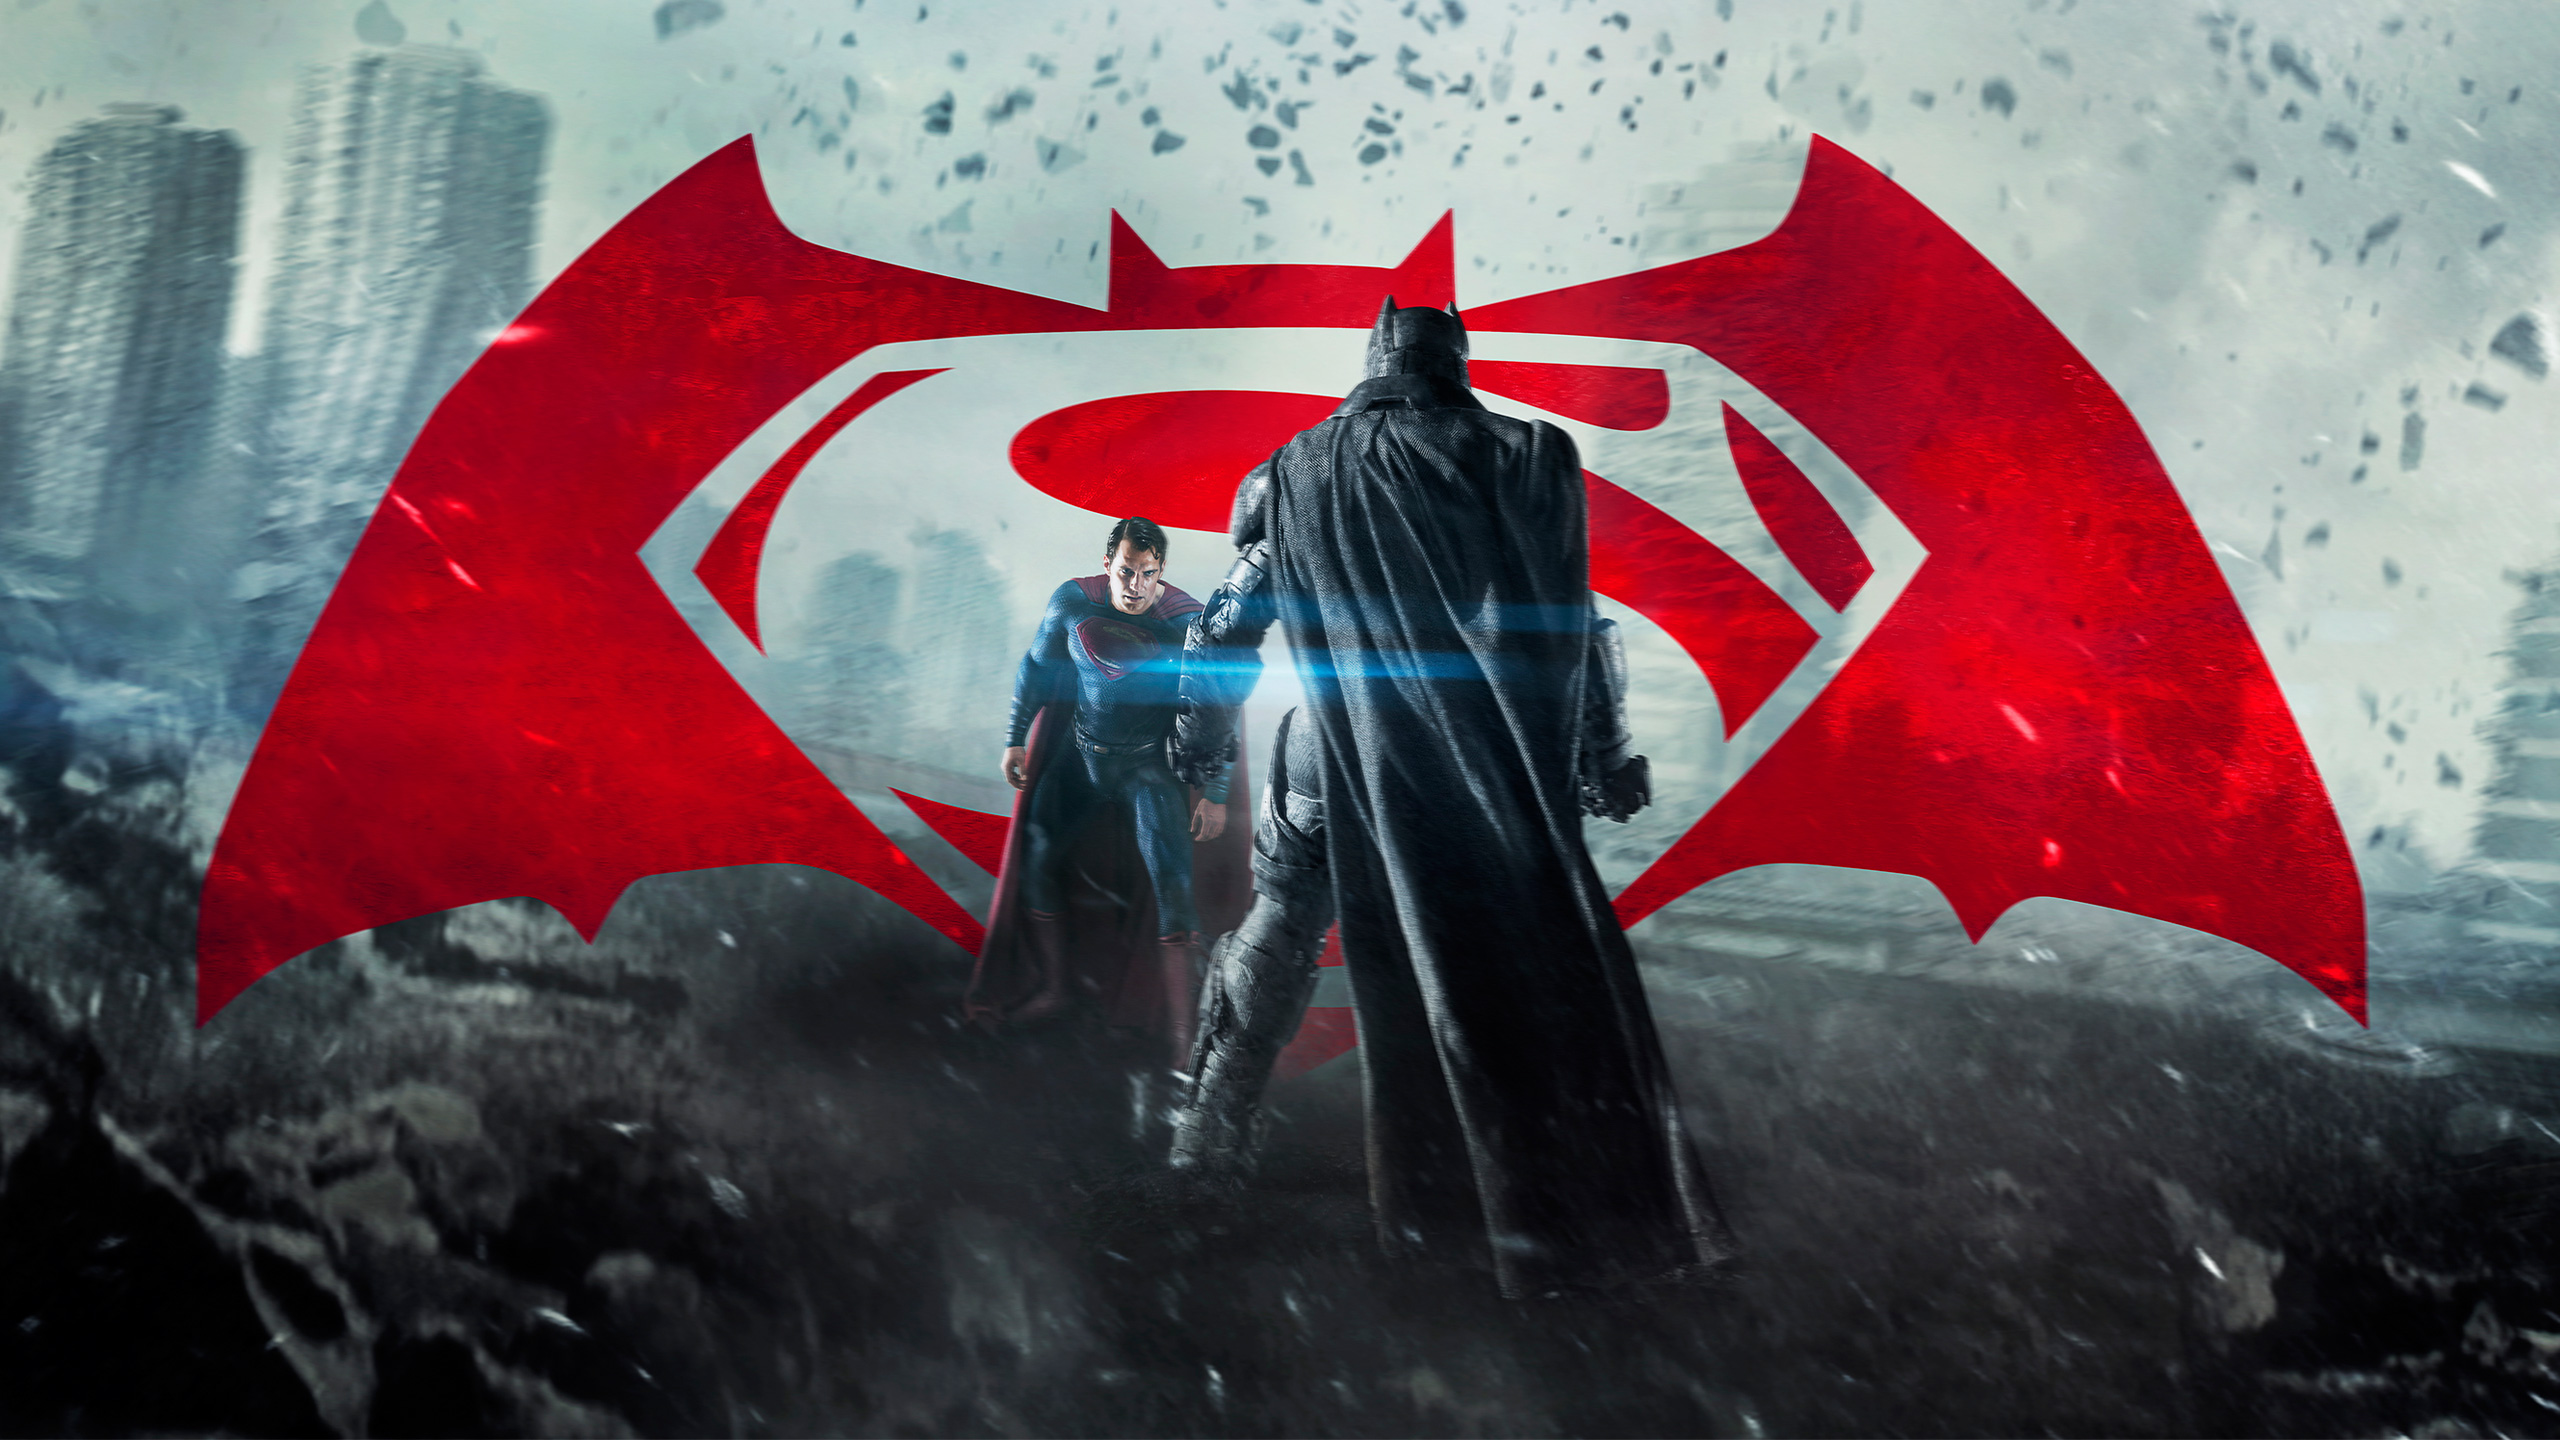 Batman v Superman Dawn of Justice HD Wallpaper DESKTOP BACKGROUNDS 2560x1440